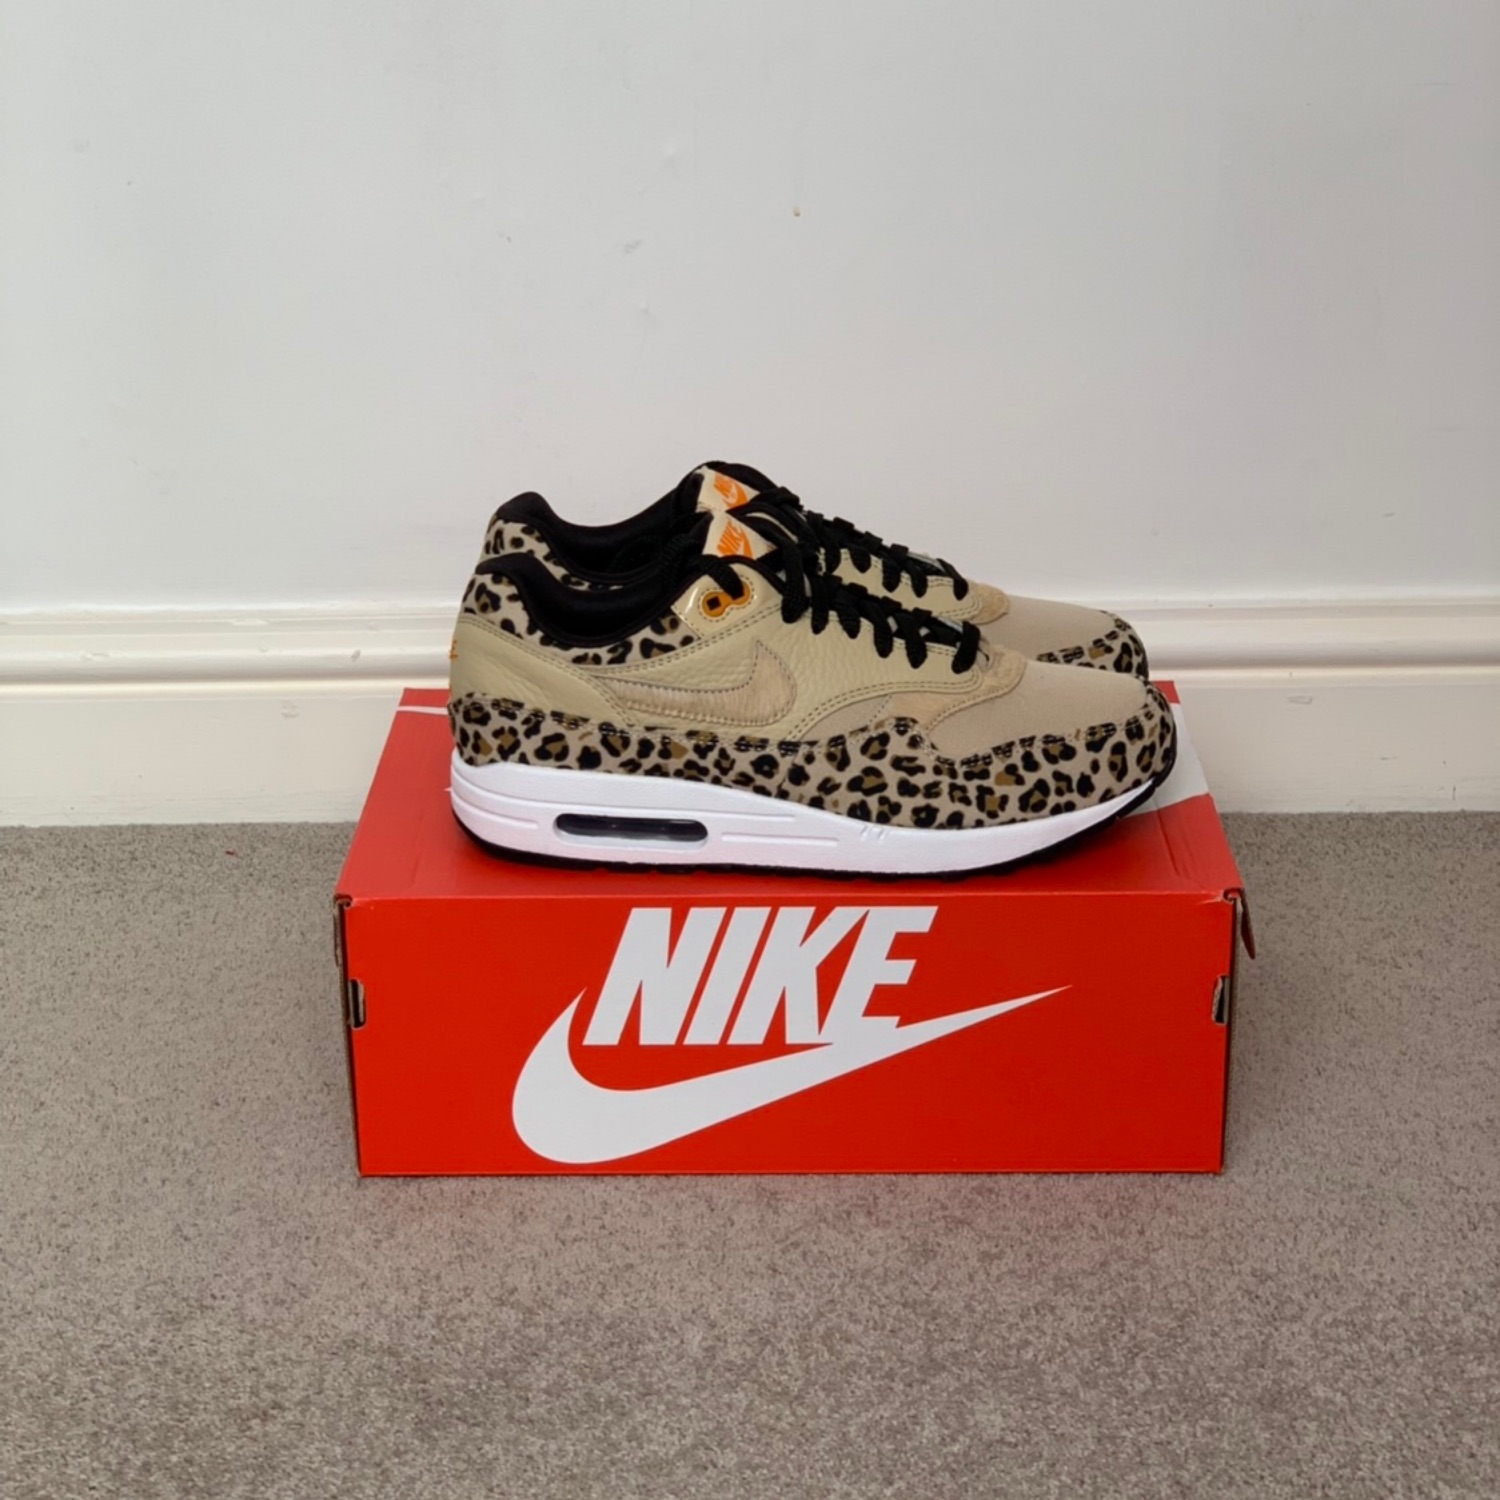 Nike Air Max 1 Safari Leopard Print